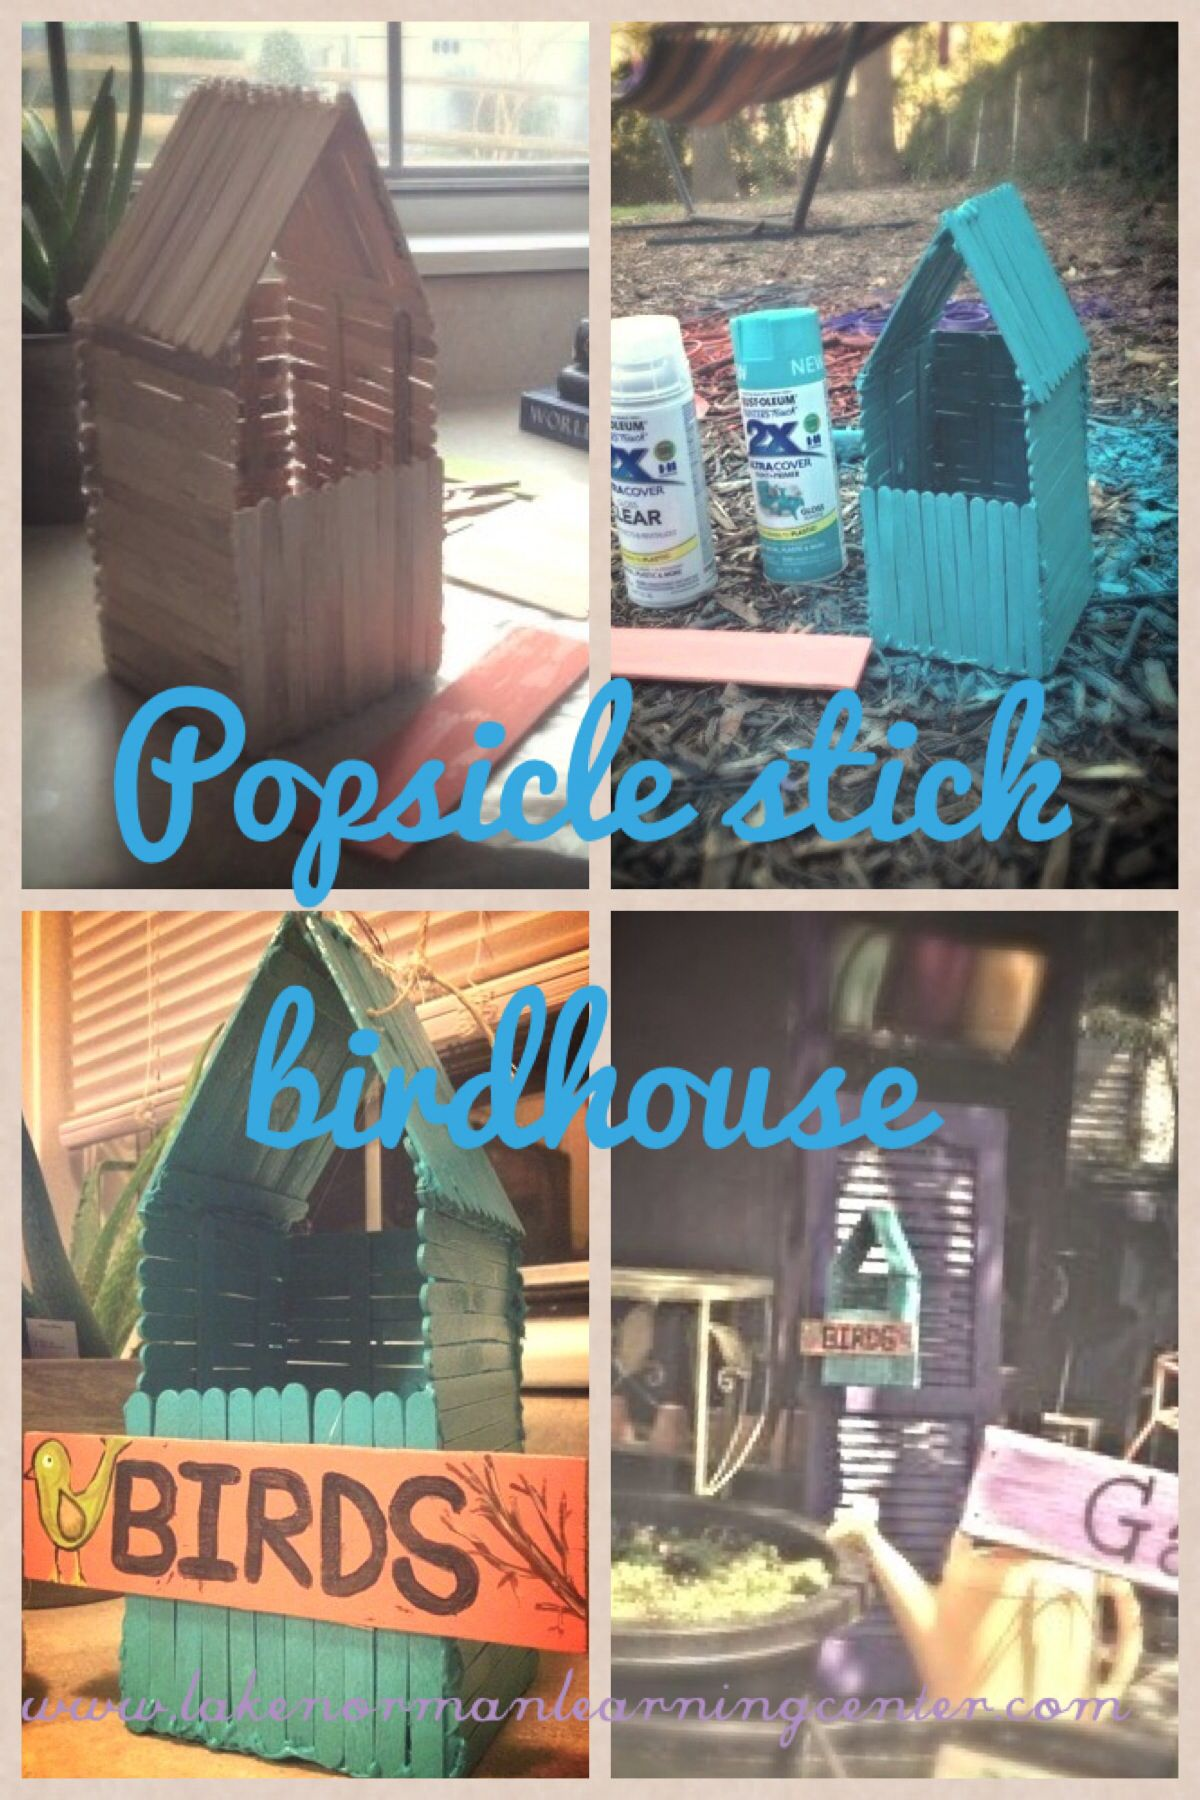 Popsicle stick church craft - Popsicle Stick Birdhouse Easy Diy Project For School Gardens